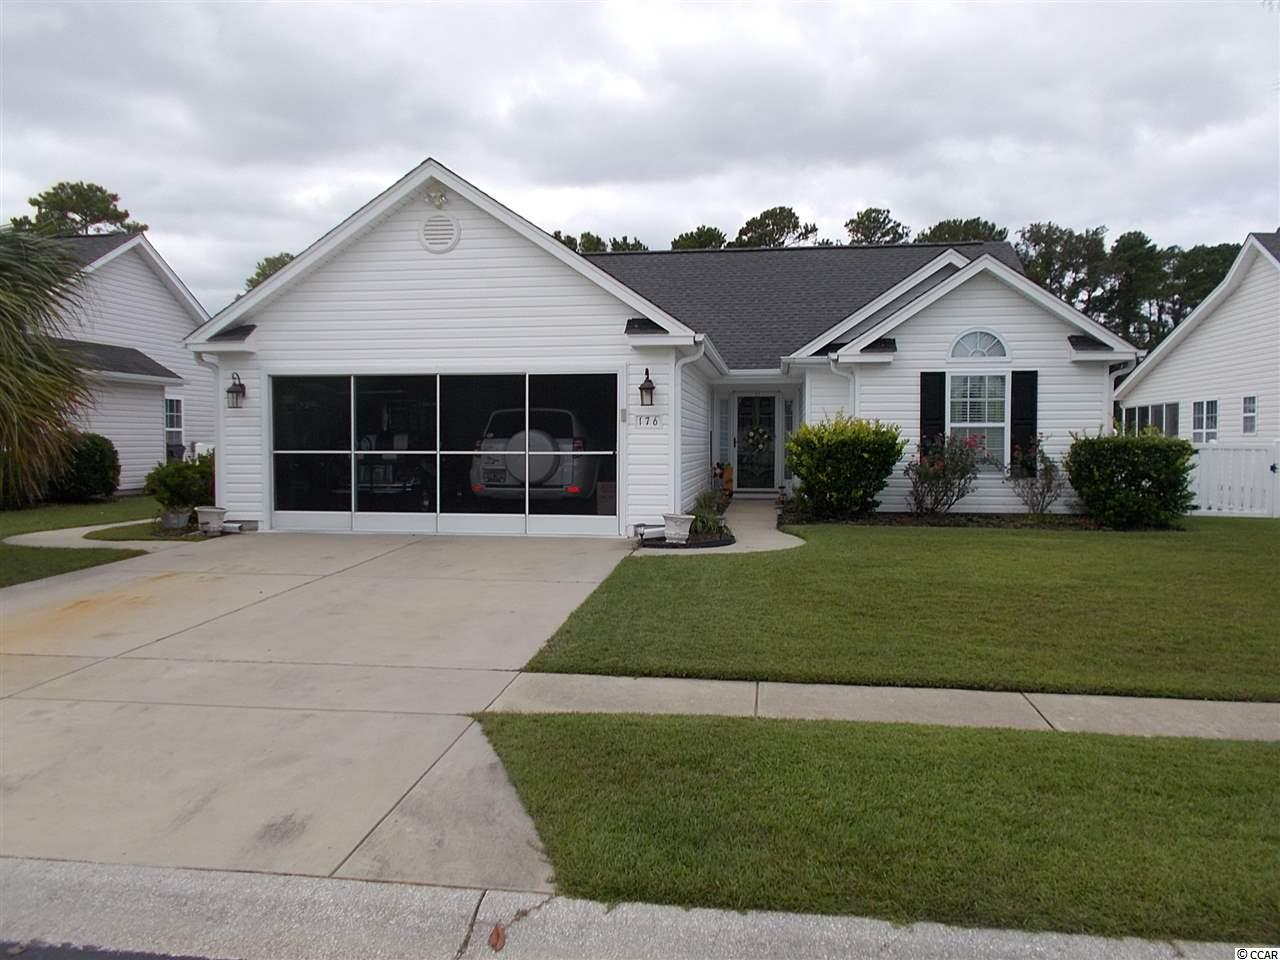 Adorable 3 bedroom 2 full bath home located in Beautiful Surfside Beach. Home well maintained, stainless steel appliances just replaced in 2018, New flooring replaced in all 3 bedrooms in 2017 with wood flooring in master bedroom and master closet and carpet in both guest bedrooms, HVAC system replaced in 2015. Irrigation system in front and rear of property. Ceiling fans in every room including the kitchen, Vaulted ceilings thru out, beautiful wood blinds included in purchase. Sliding glass doors off of the breakfast nook area and from living room to screened in back patio over looking spacious Fenced in backyard, with plenty of room to install your own pool. Comes with home warranty with 14 months of coverage through Home Warranty Inc.  A must see, call today to schedule an appointment.